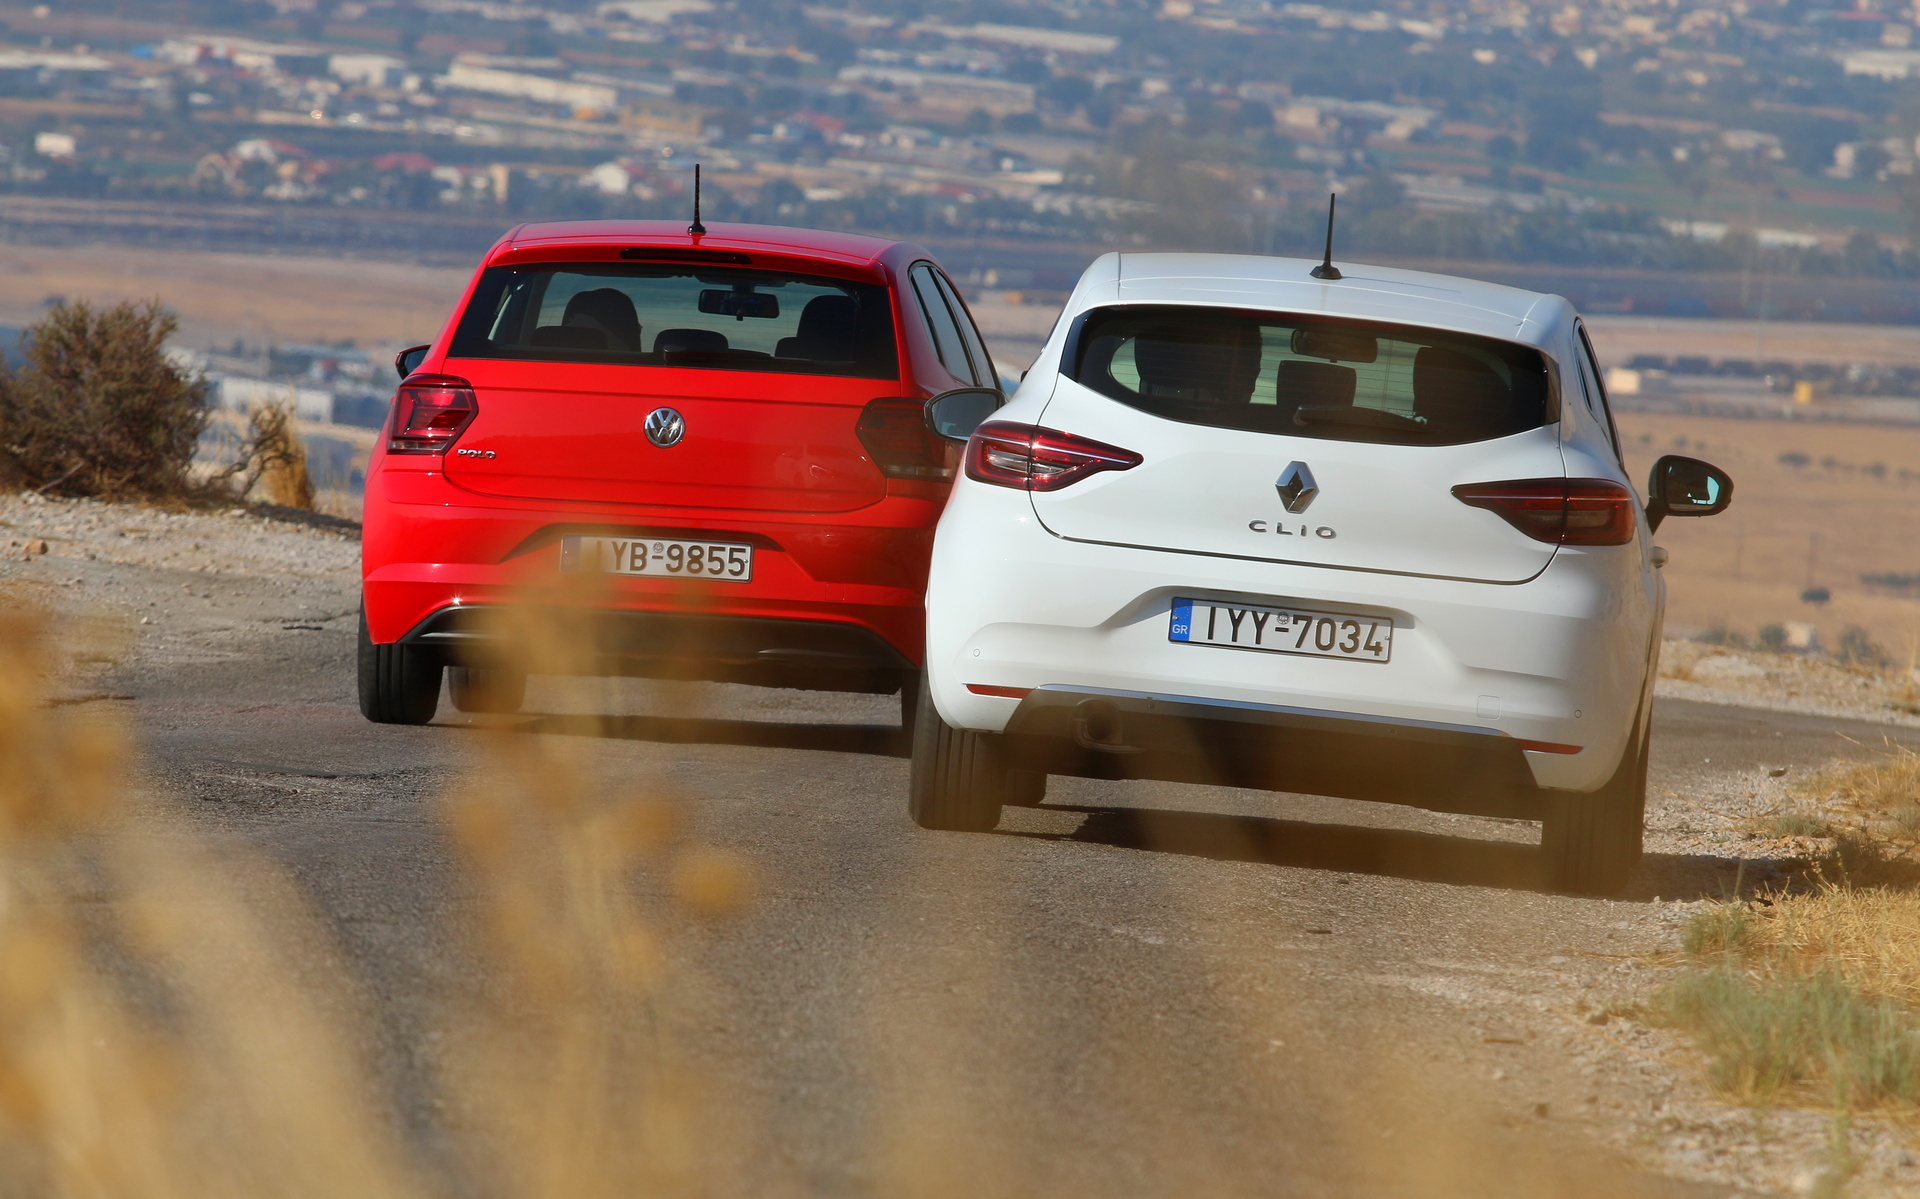 Renault Clio 1.0 TCe 100 PS - VW Polo 1.0 TSI 95 PS